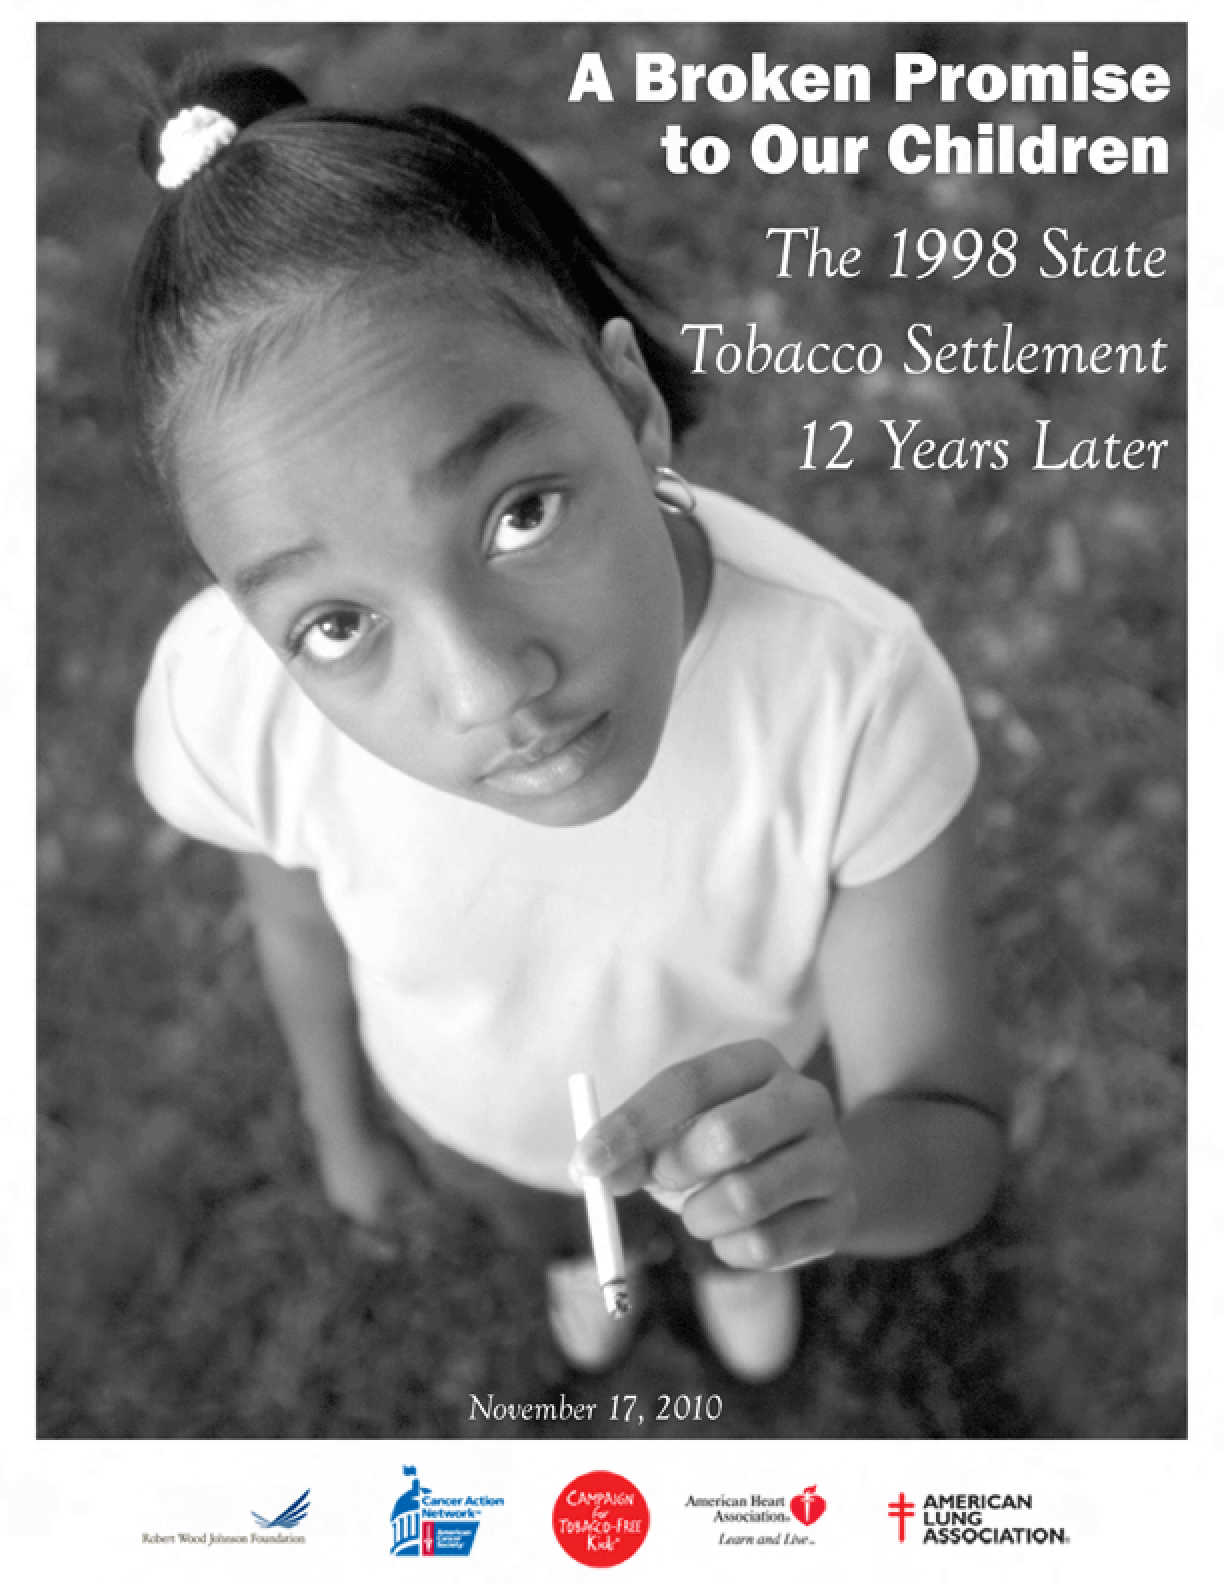 A Broken Promise to Our Children: The 1998 State Tobacco Settlement 12 Years Later